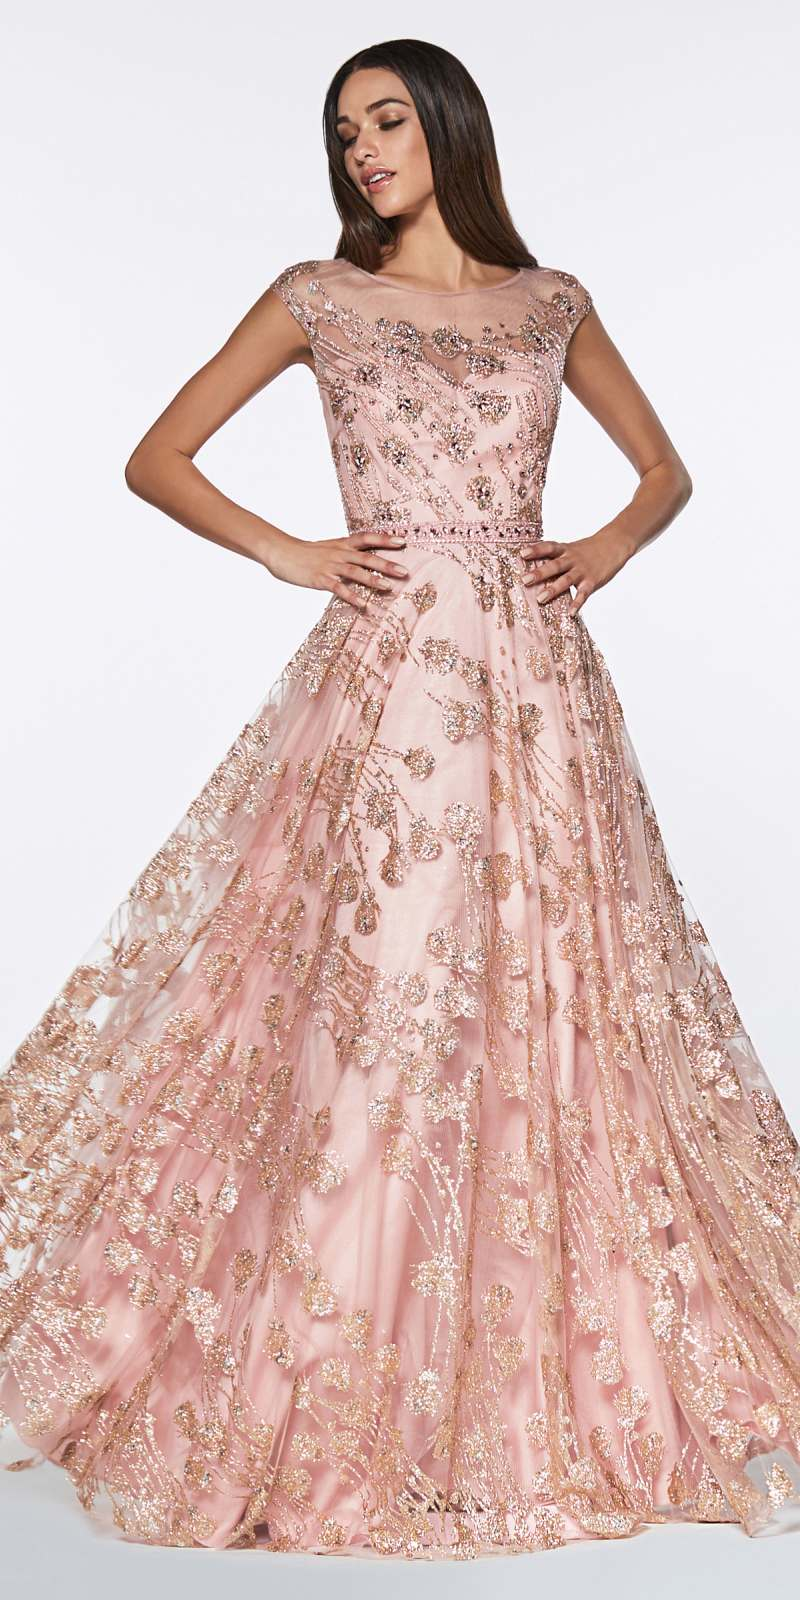 83ee976aeb4 Long Sleeve Rose Gold Sparkly Dress - Data Dynamic AG